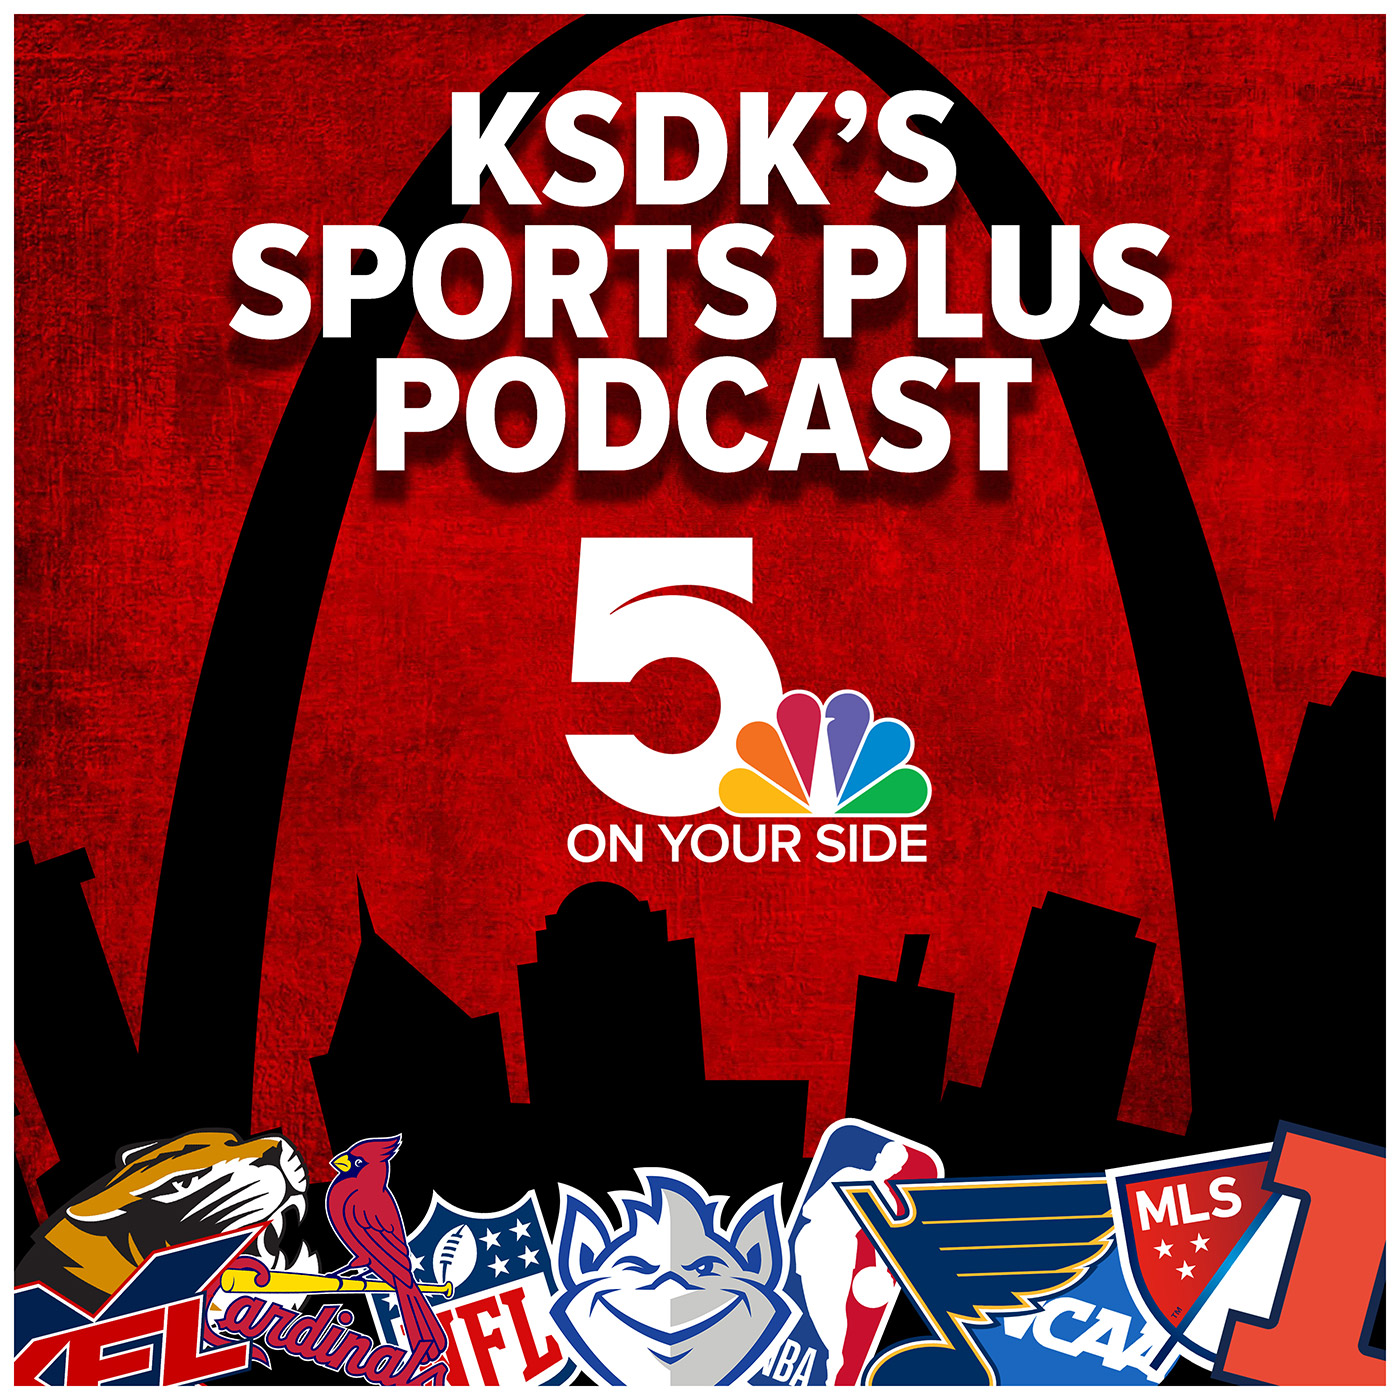 KSDK's Sports Plus Podcast Trailer